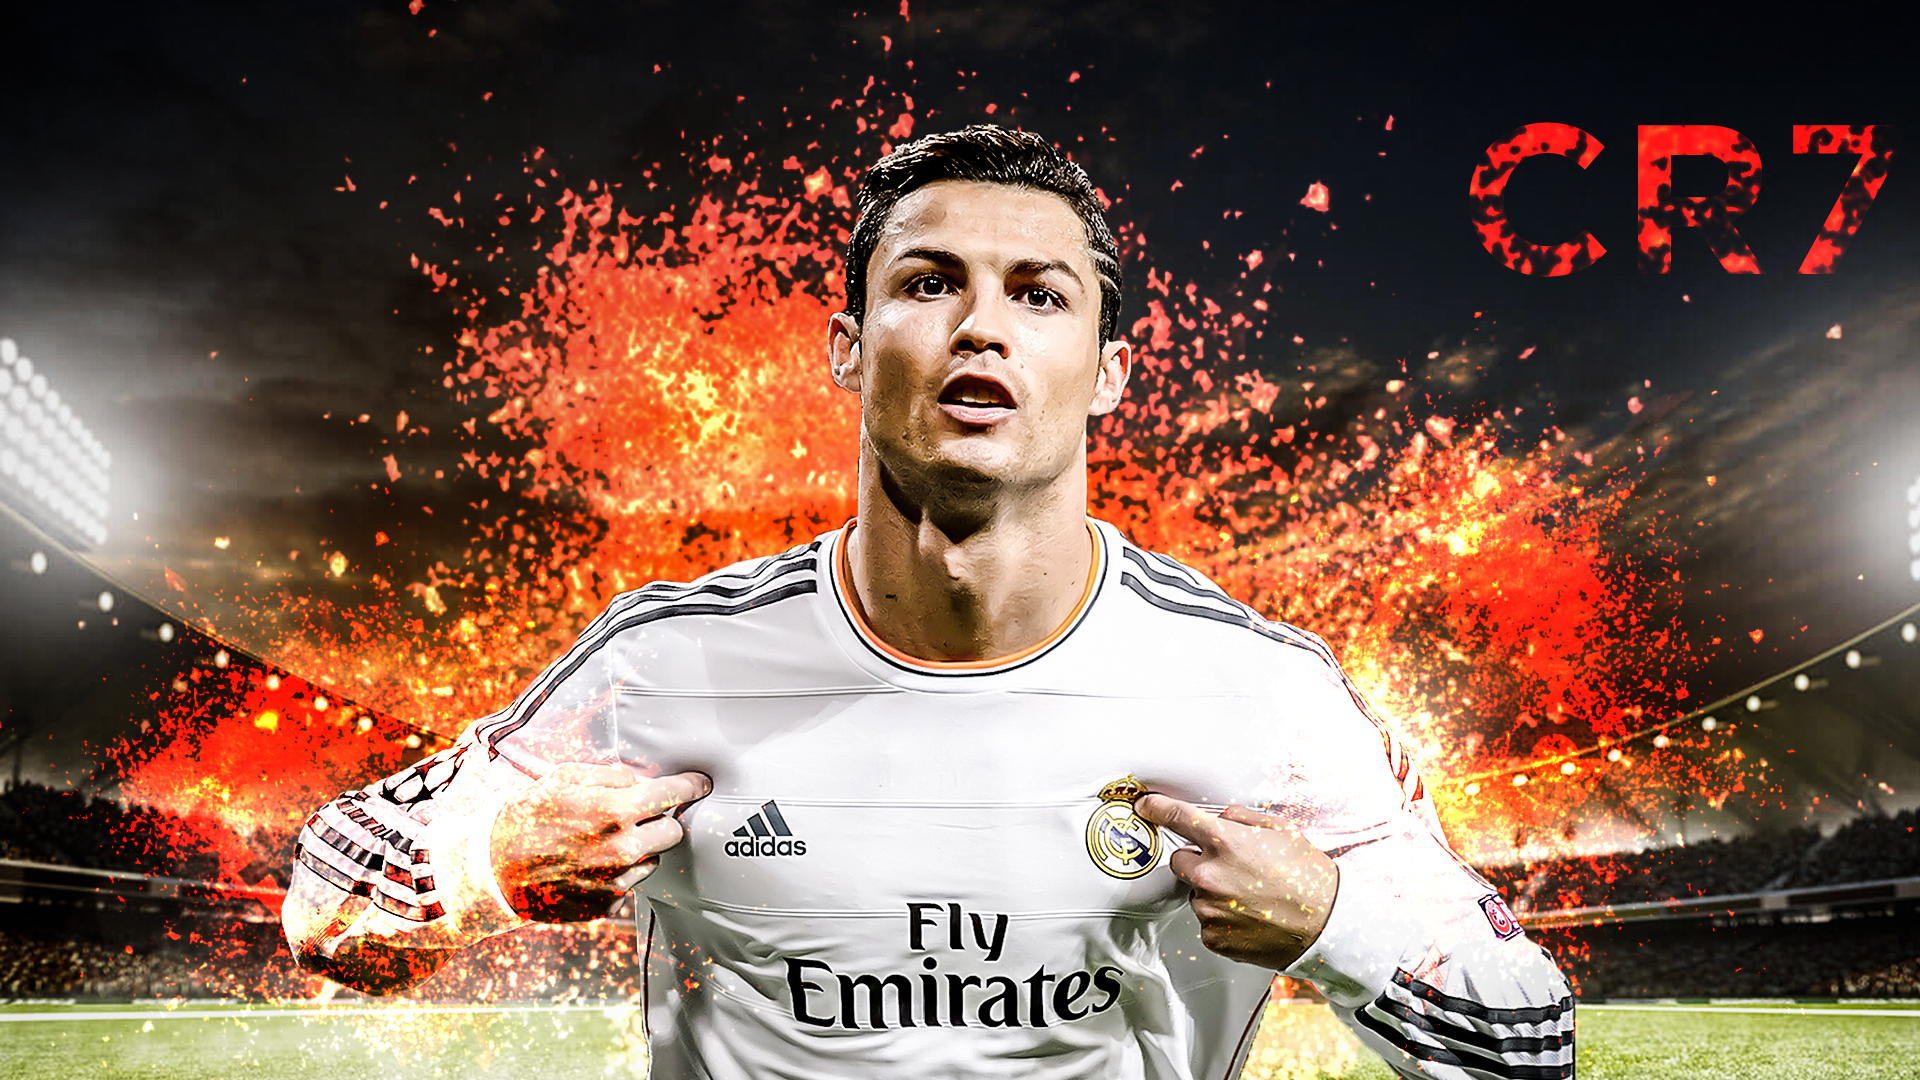 41 Cristiano Ronaldo 2019 Wallpapers On Wallpapersafari